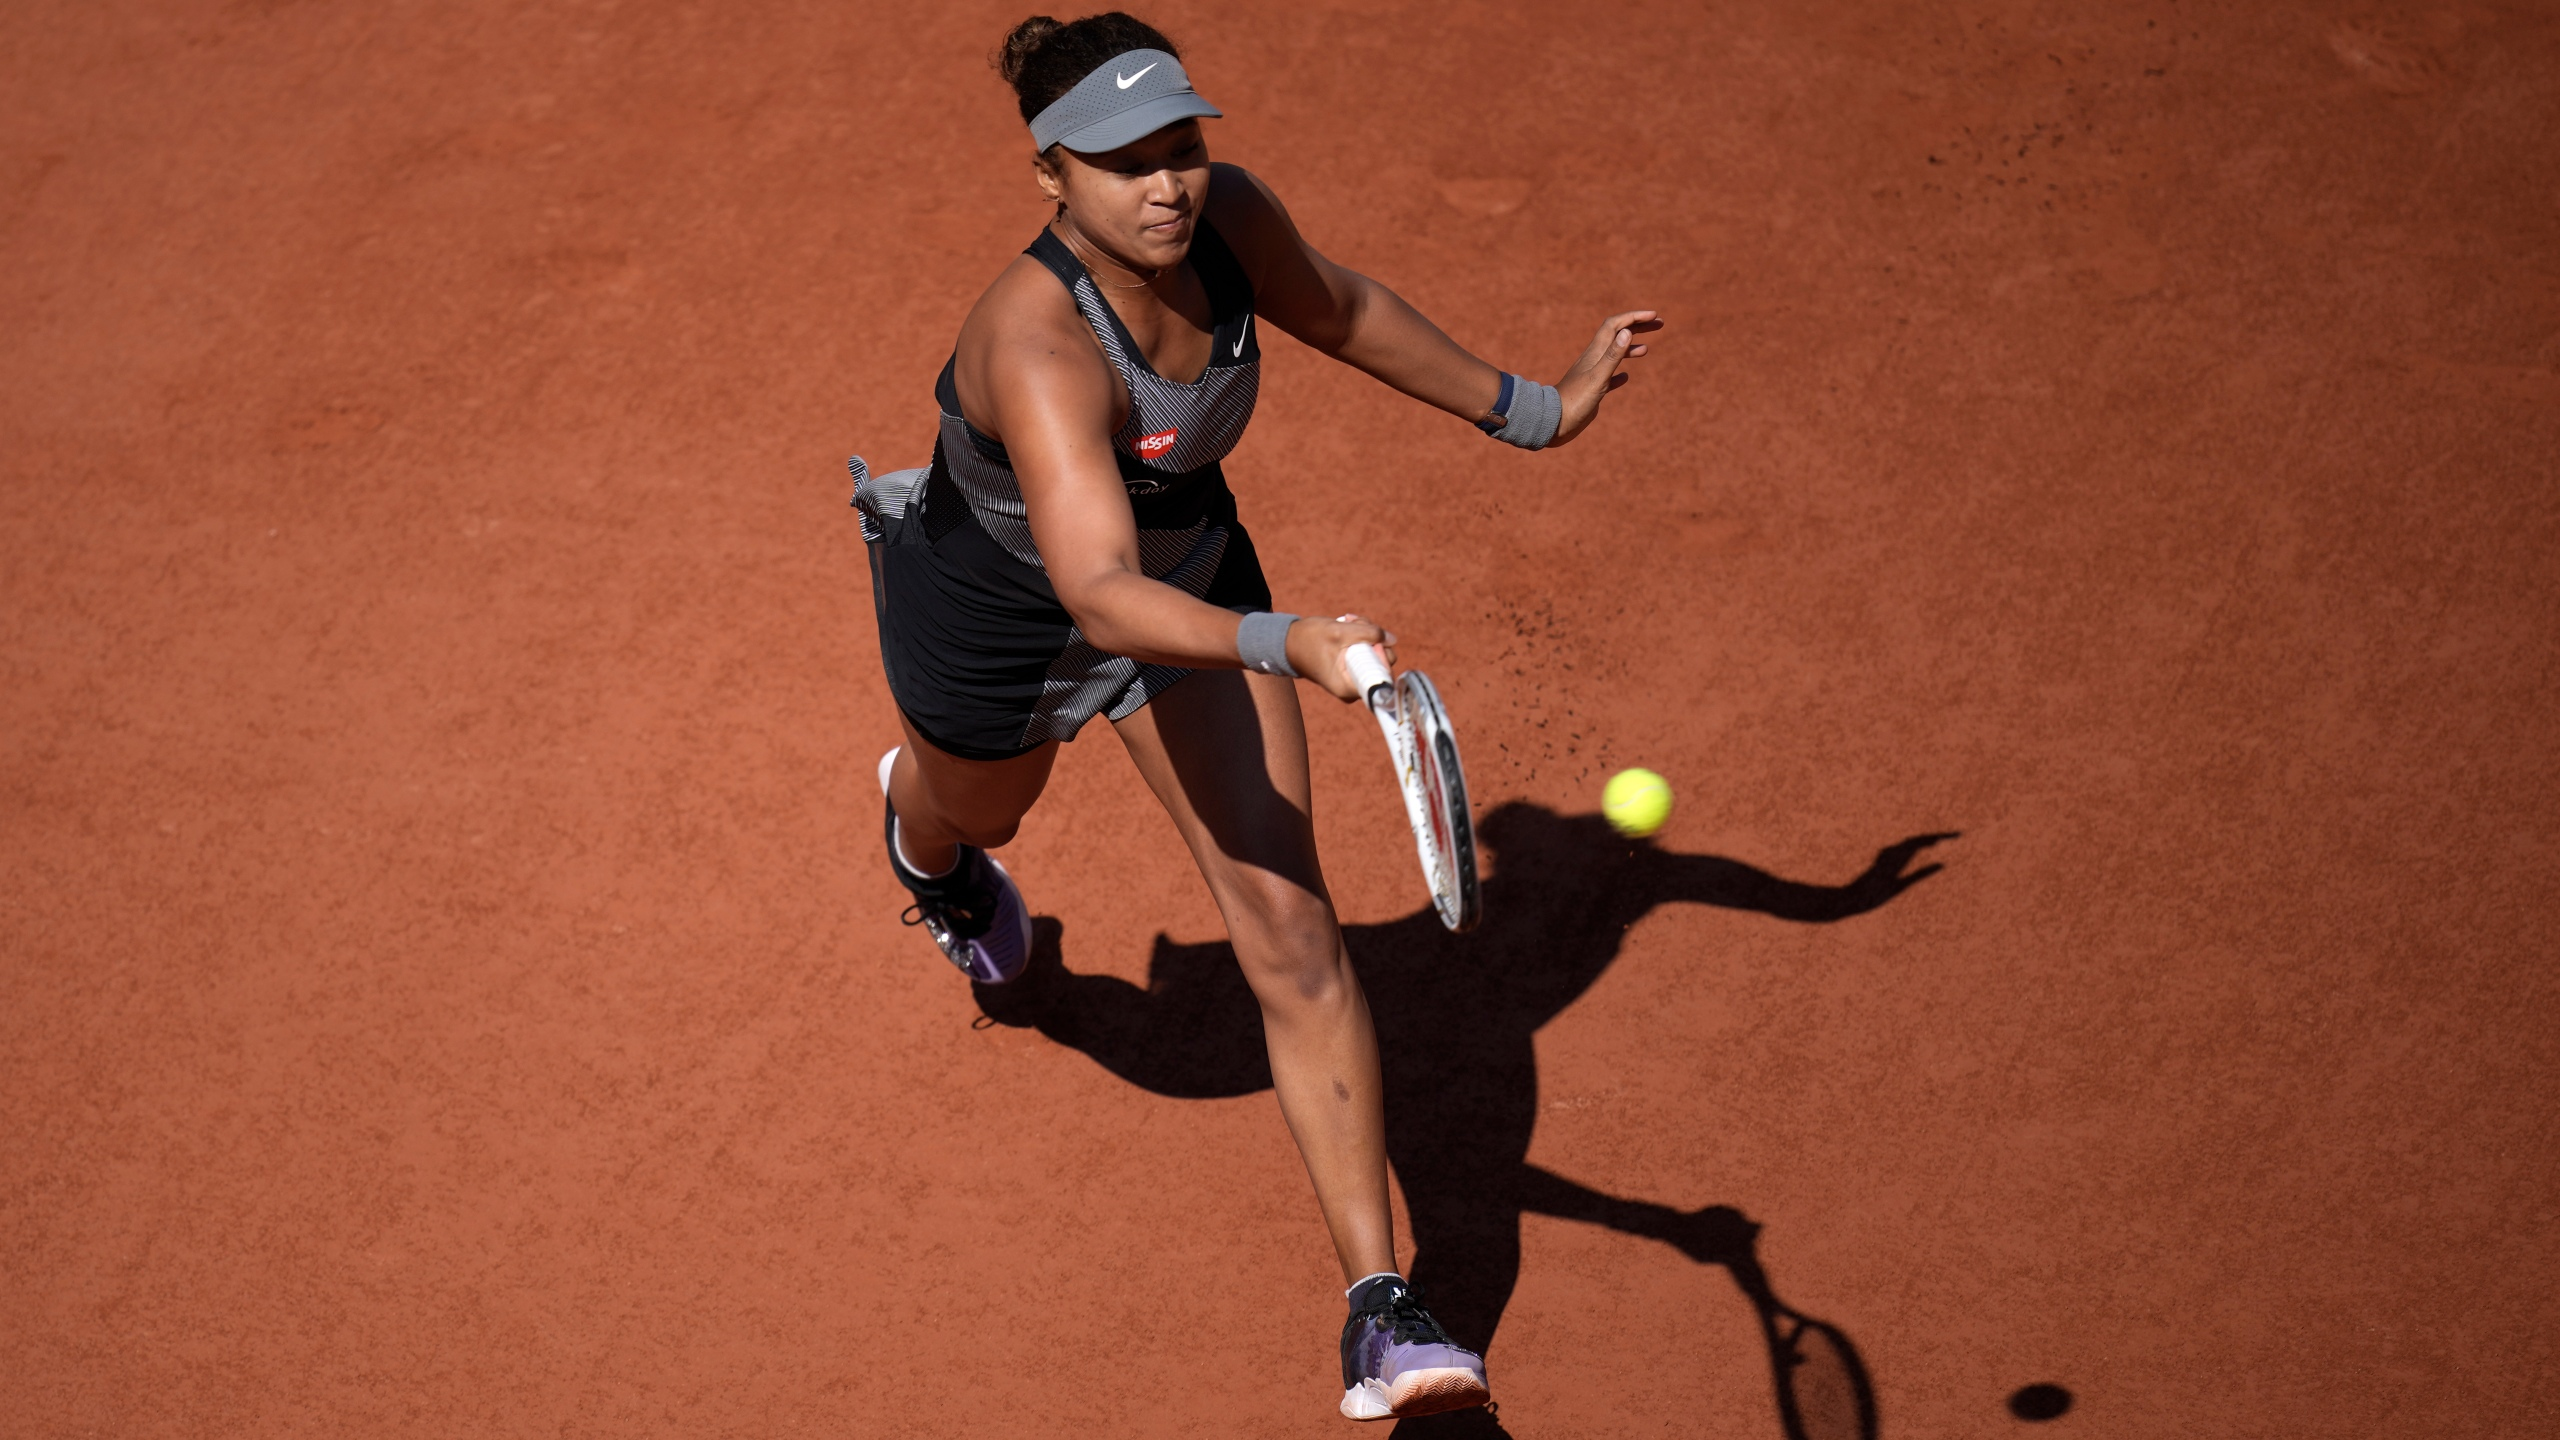 Japan's Naomi Osaka returns the ball to Romania's Patricia Maria Tig during their first round match at the Roland Garros stadium on May 30, 2021 in Paris. (Christophe Ena/Associated Press)